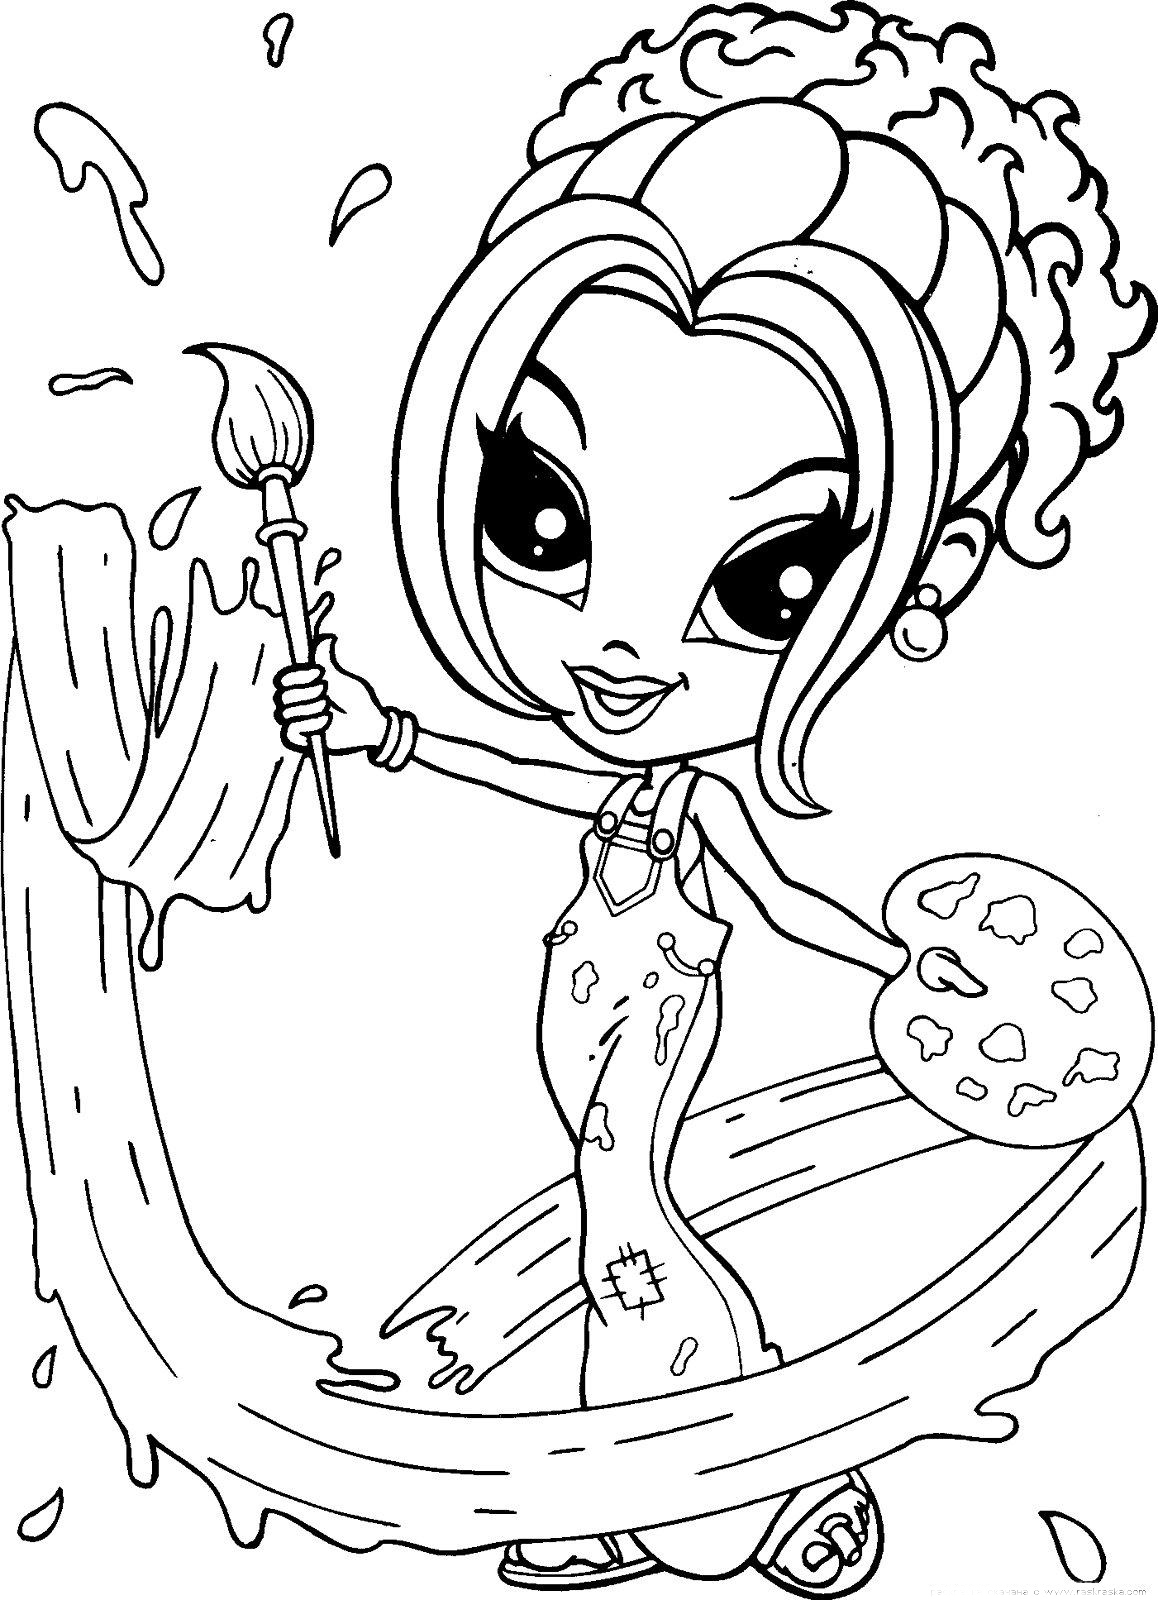 color pages to print free printable tangled coloring pages for kids cool2bkids color to print pages